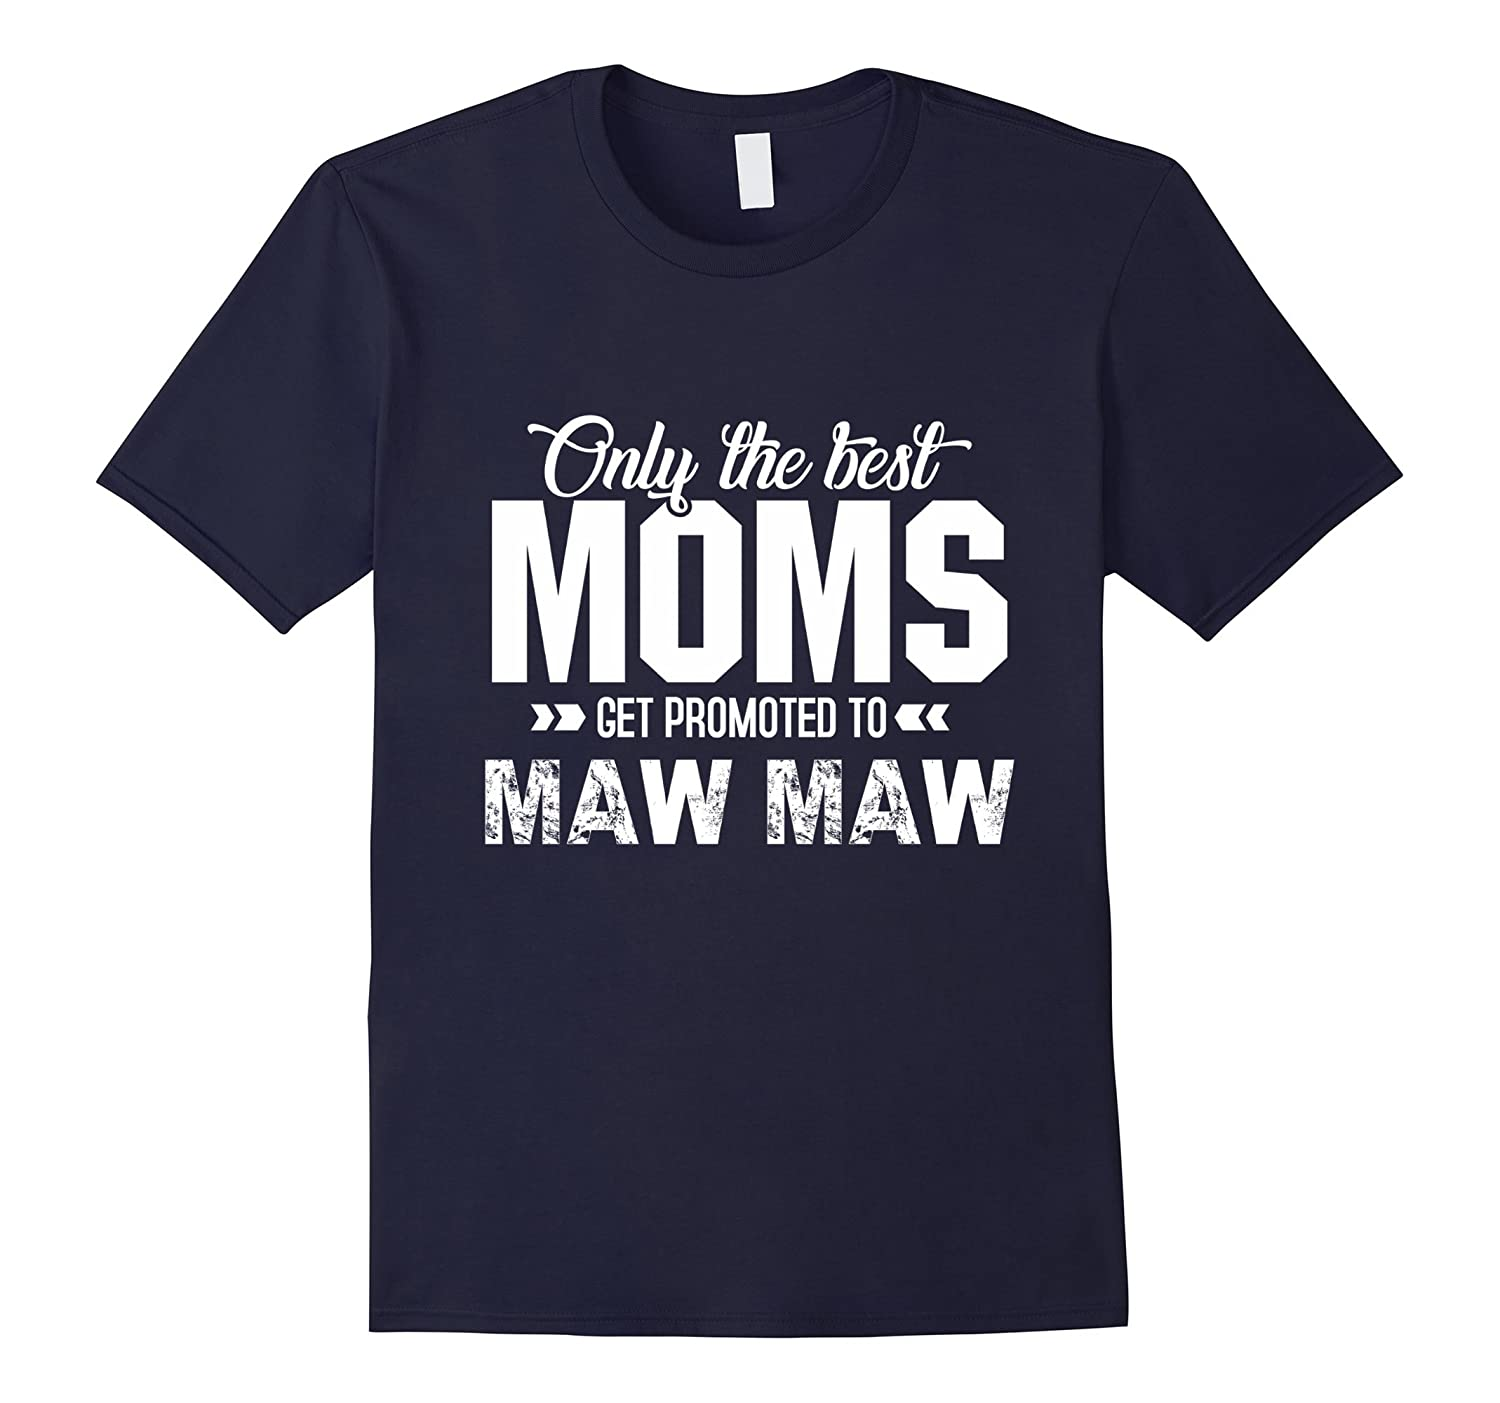 eaec2f29 Only The Best MOMS Get Promoted To MAW MAW T-Shirt Grandma-TH - TEEHELEN